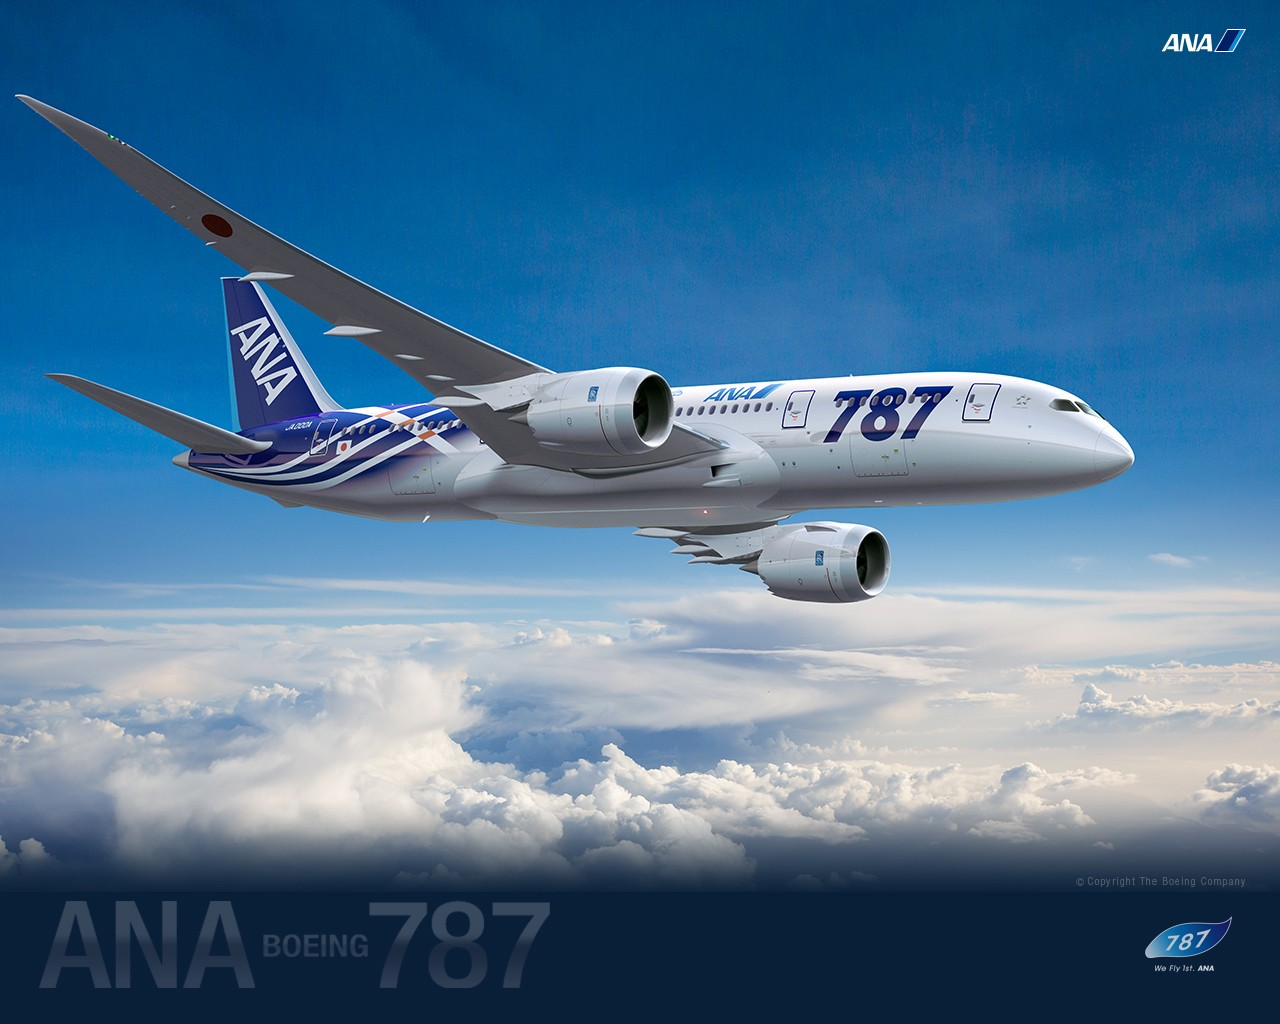 ANA All Nippon Airways Boeing Dreamliner wallpaper 30567